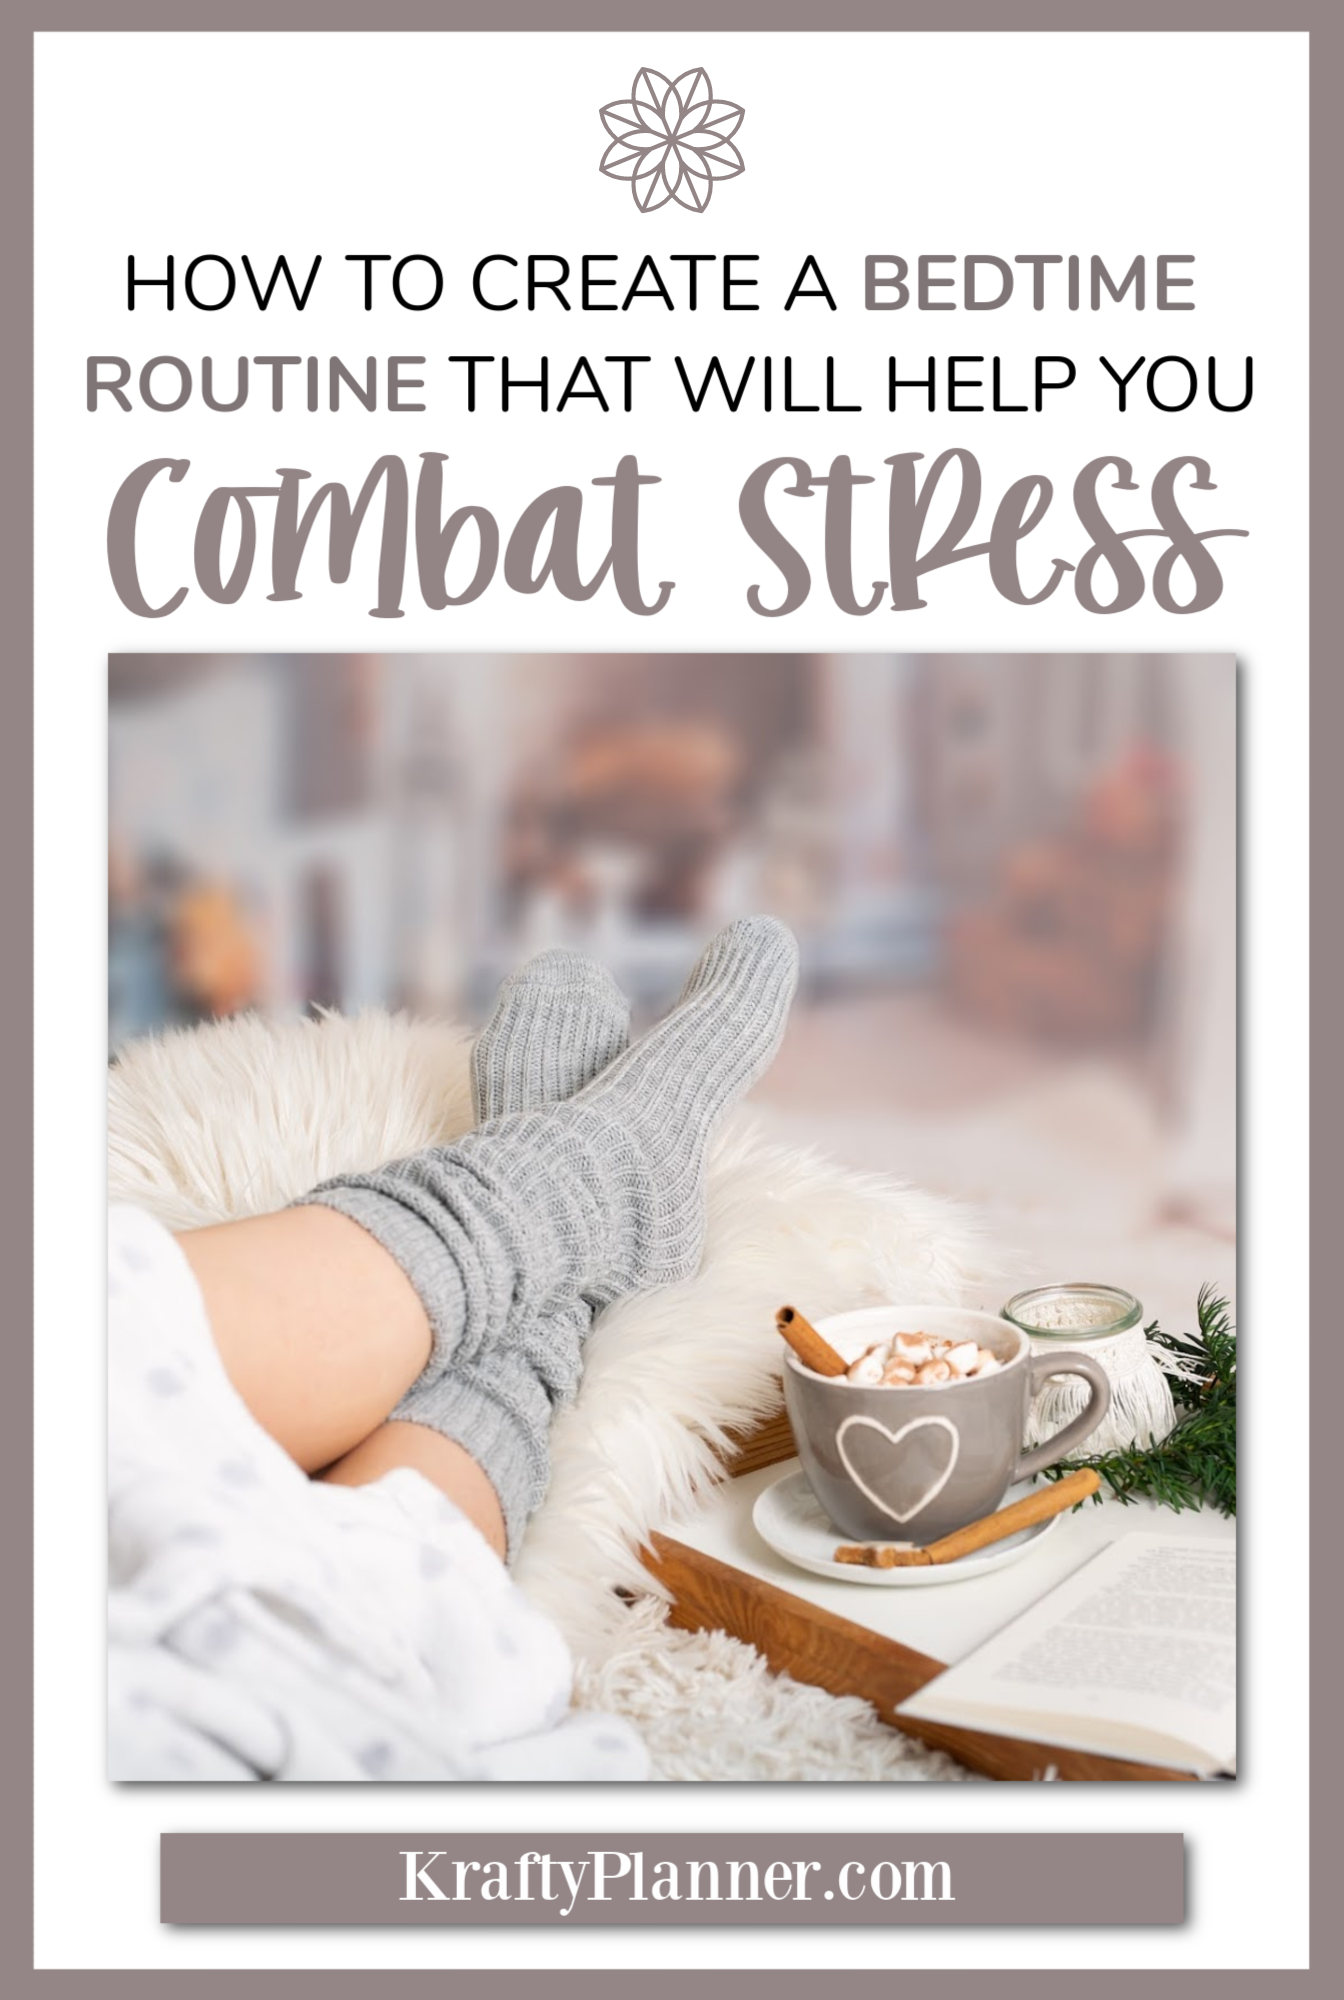 How to Create a Bedtime Routine That Will Help You Combat Stress PIN 2.png